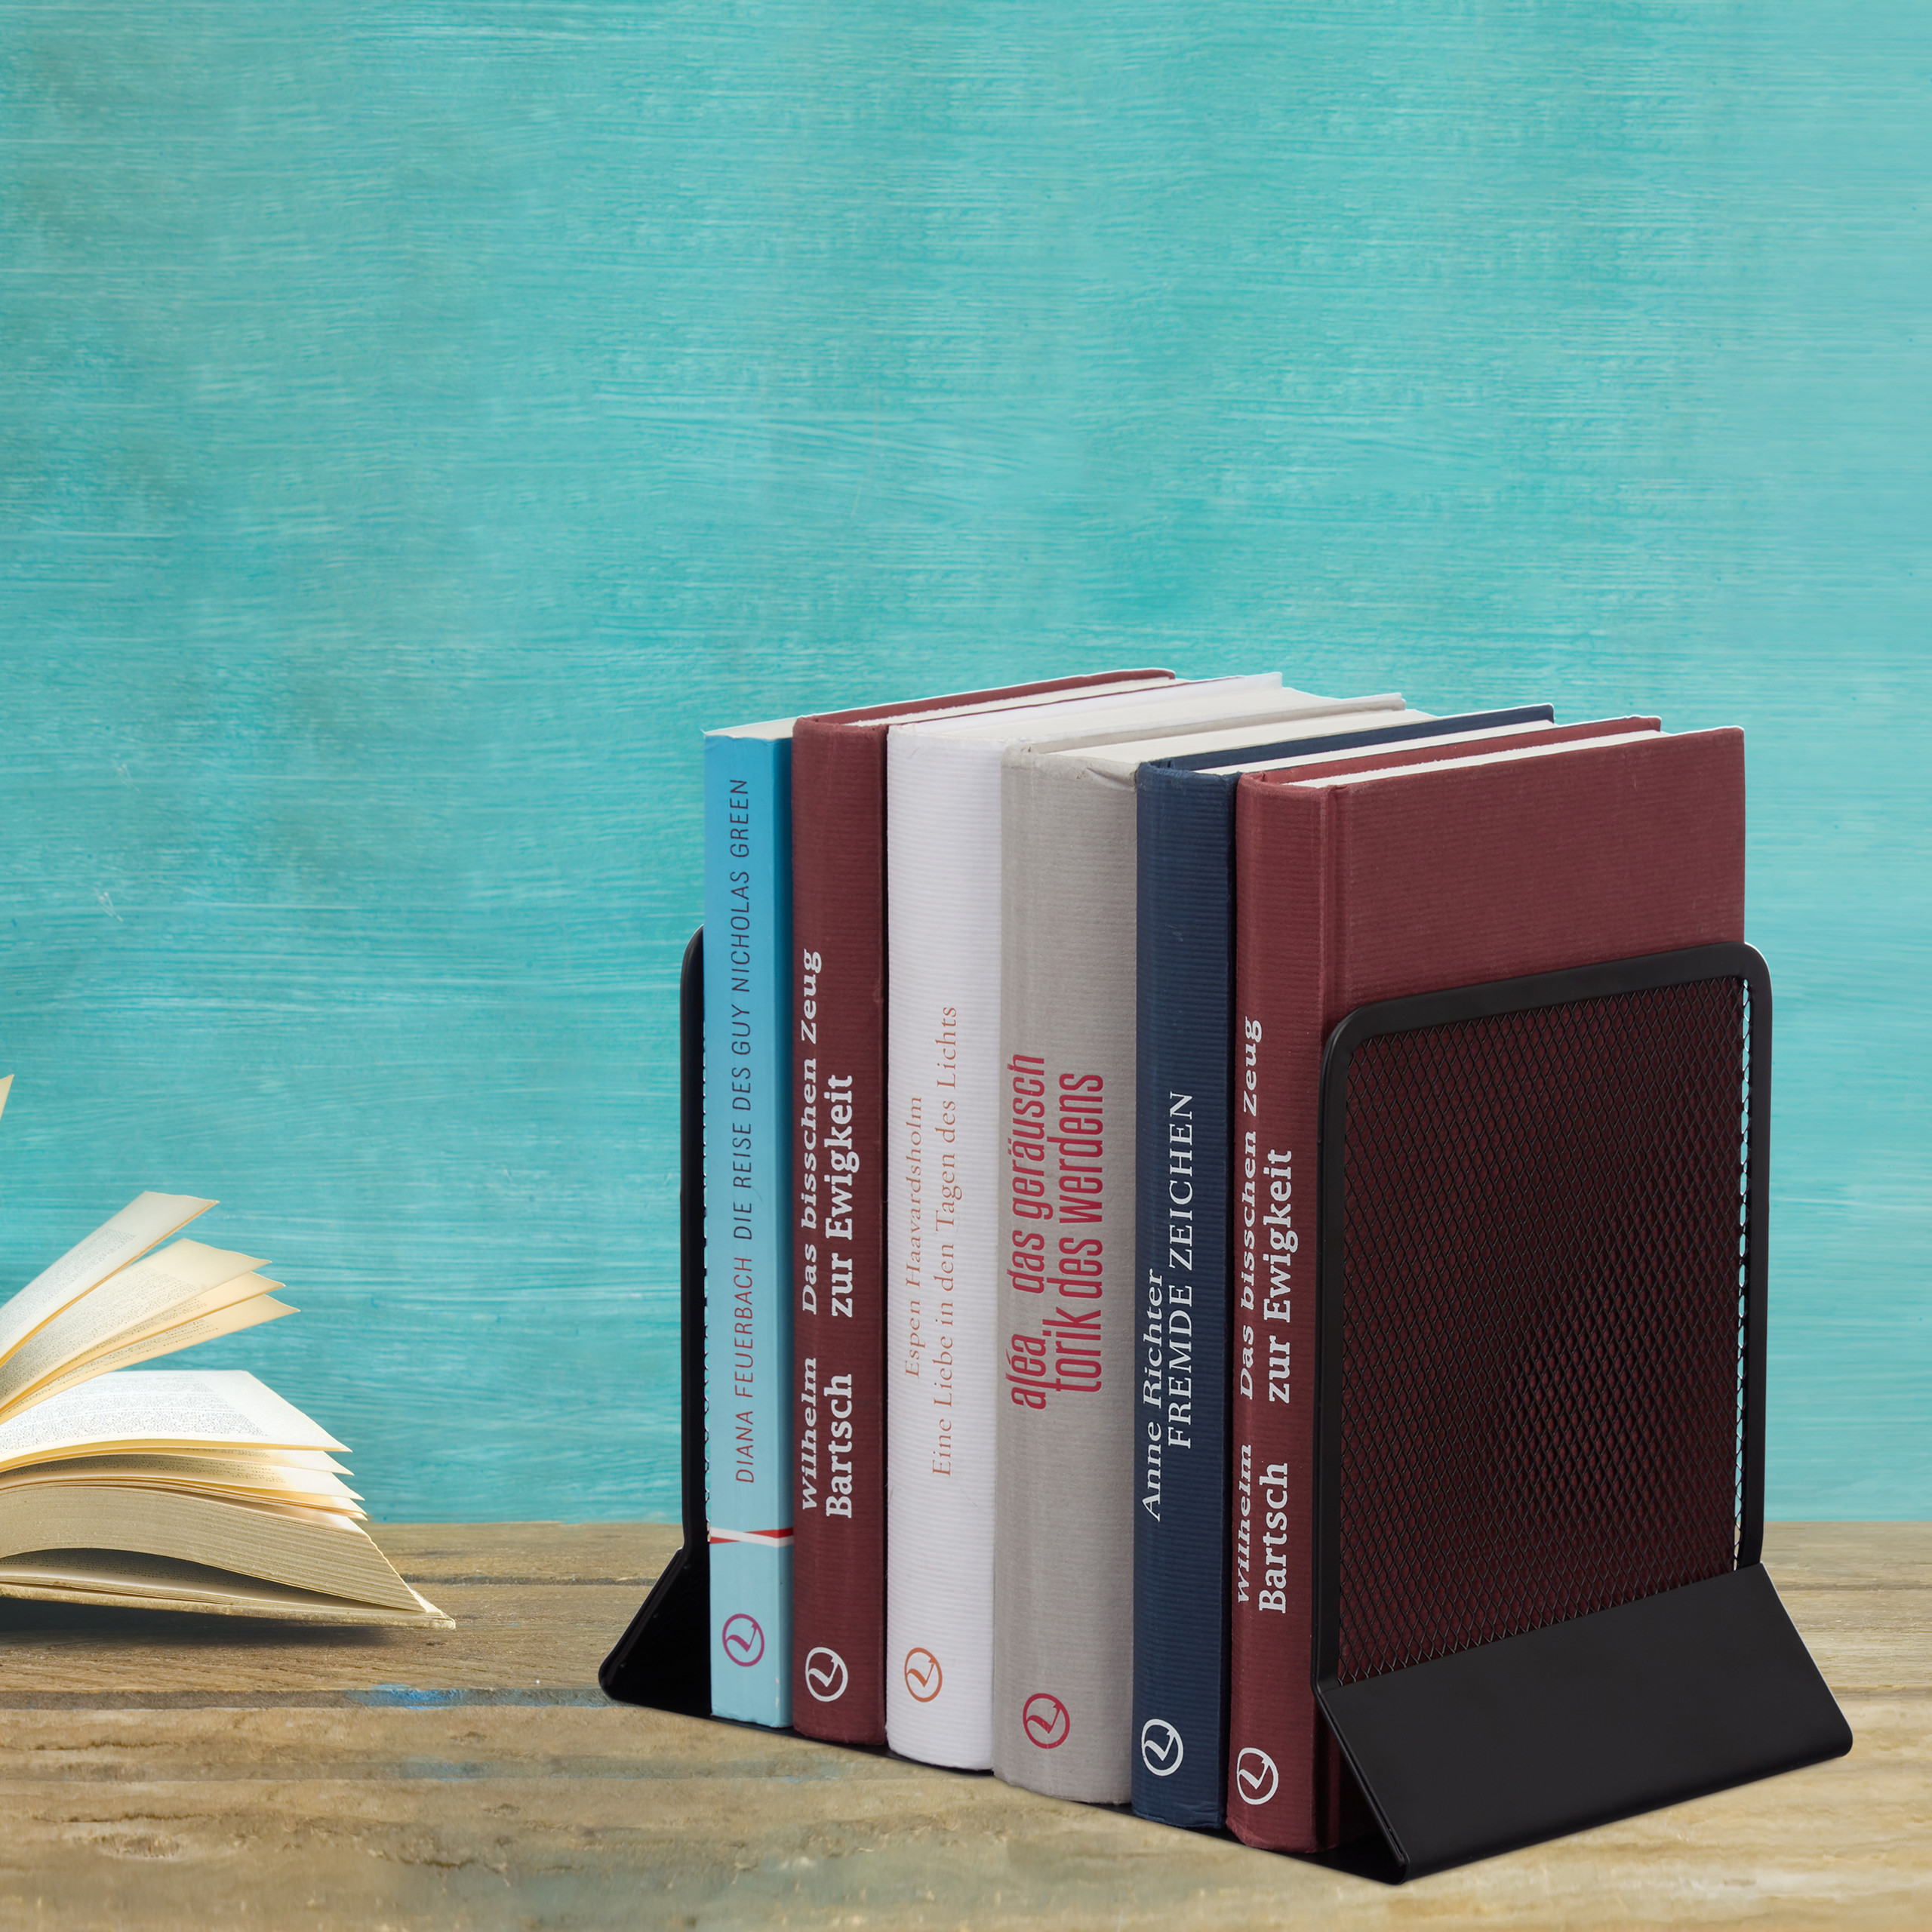 2-Piece-Bookend-Set-Decorative-Book-CD-and-DVD-Holders-Metal-Book-Support thumbnail 5